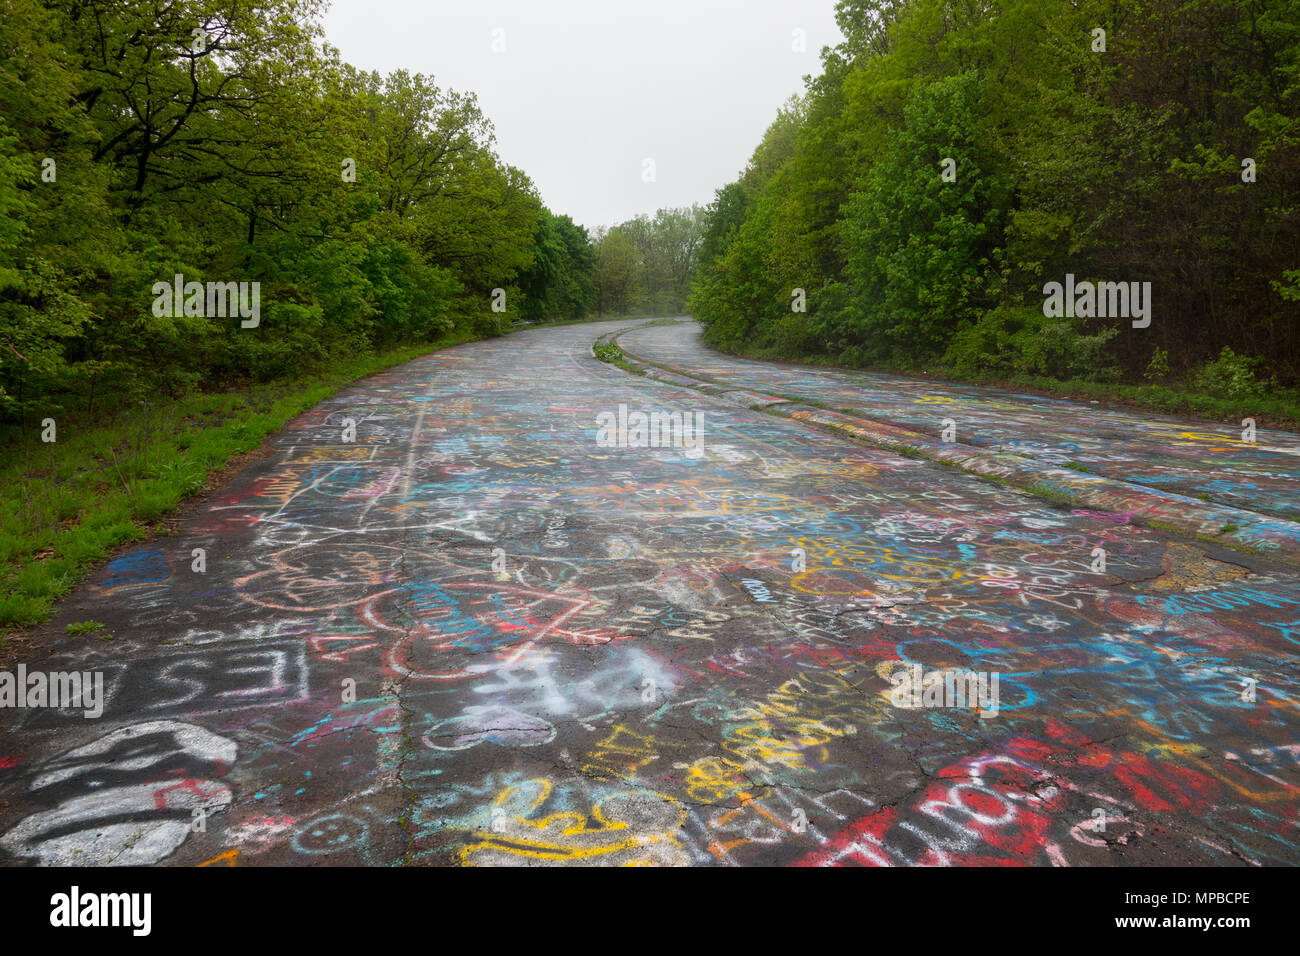 usa-pennsylvania-pa-centralia-an-abandoned-town-and-highway-after-a-coal-mine-fire-in-1962-MPBCPE.jpg